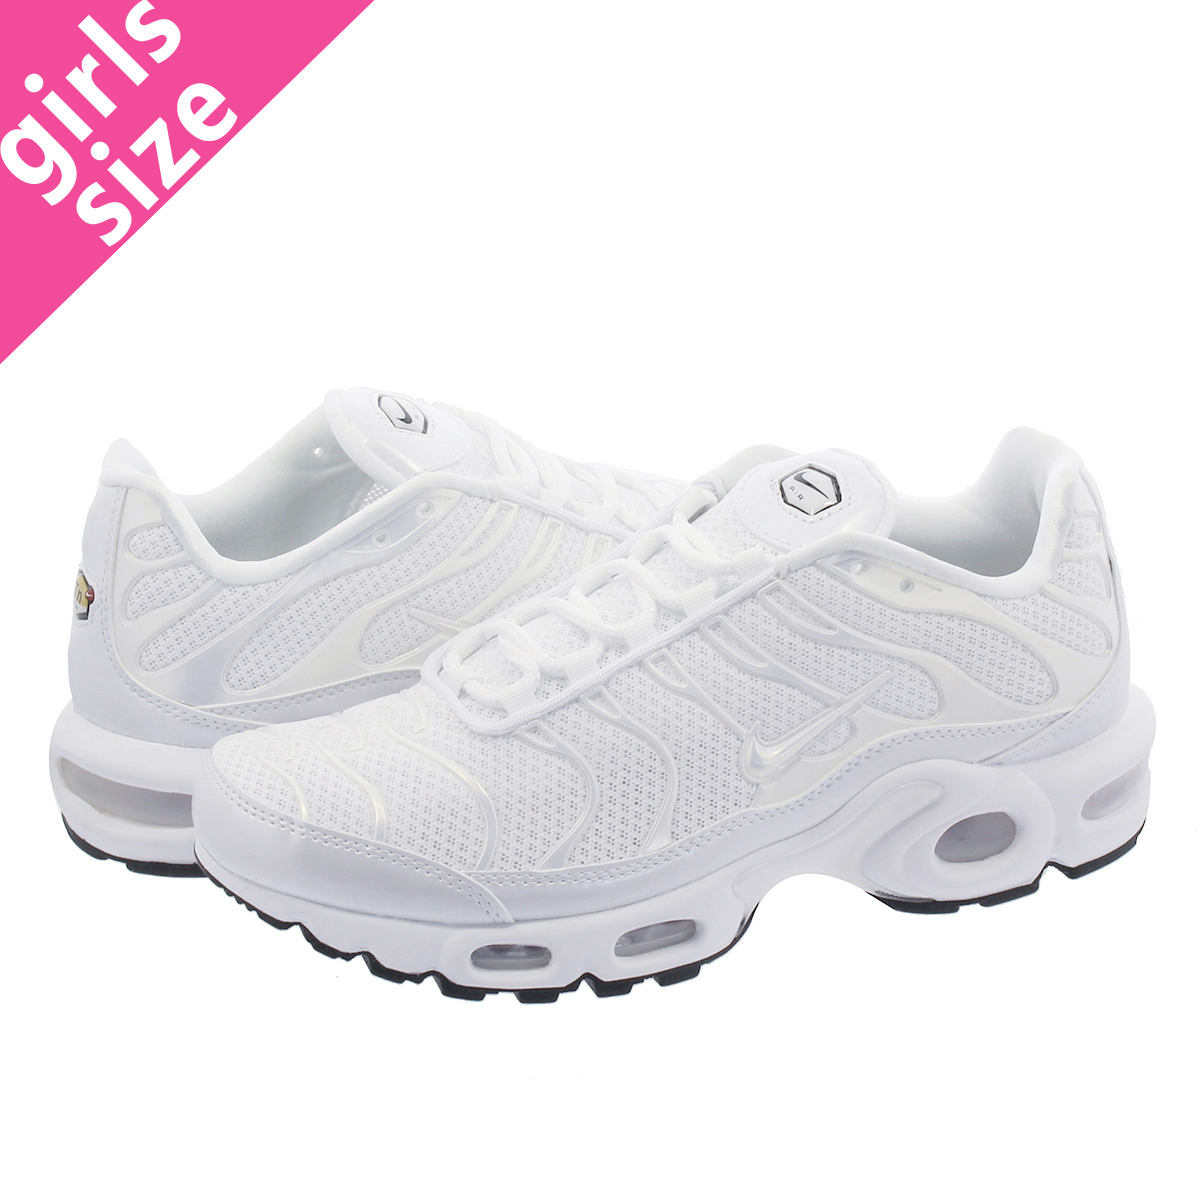 sale retailer 59e1c 12bce NIKE WMNS AIR MAX PLUS PREMIUM Nike women Air Max plus premium  WHITE WHITE WHITE BLACK 848,891-100